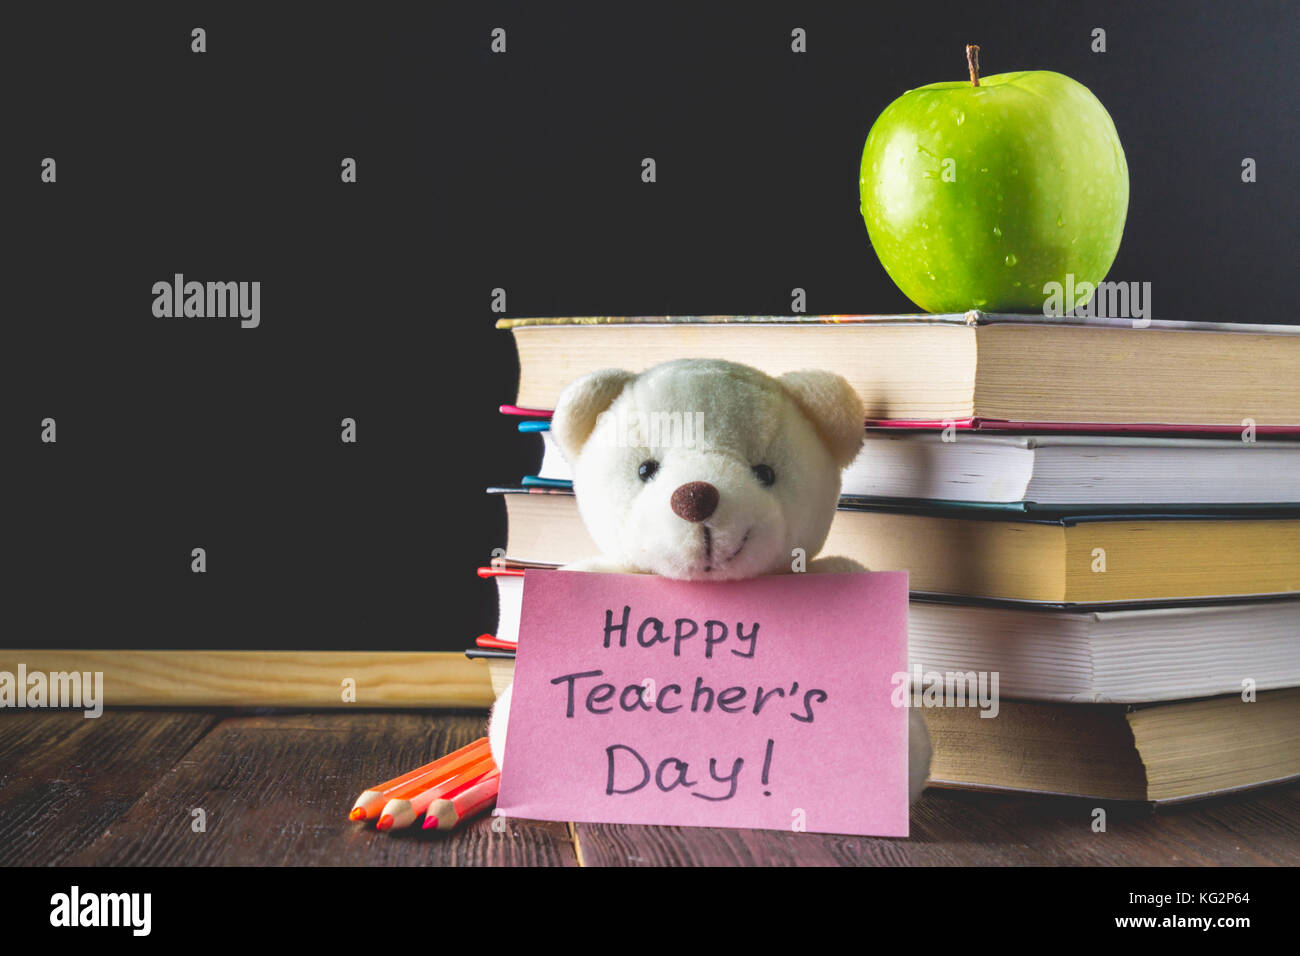 Objects On A Chalkboard Background Books Green Apple Bear With Sign Happy Teachers Day Pencils And Pens In Glass